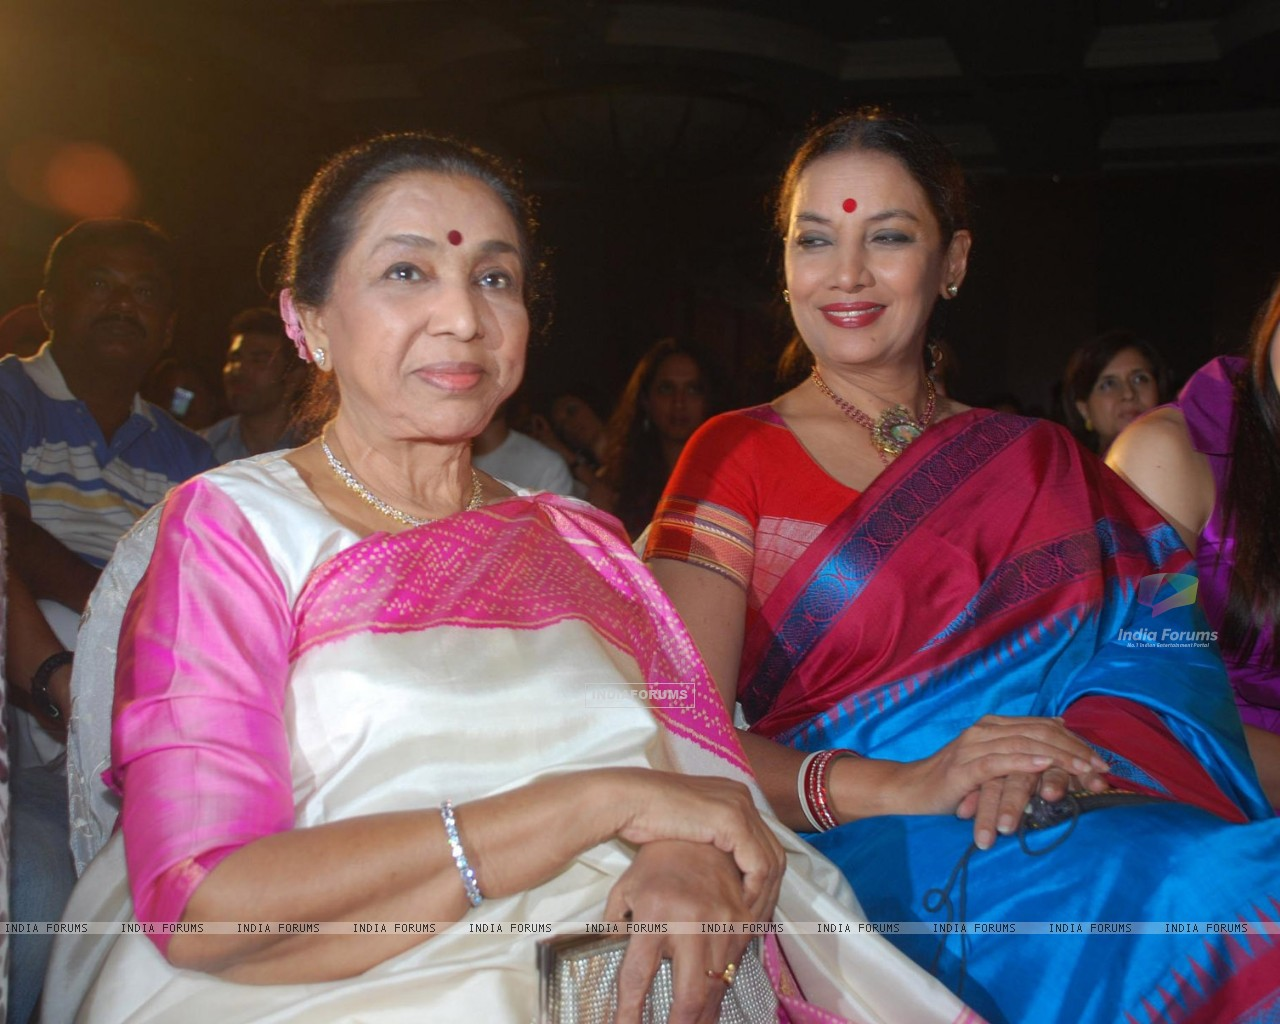 Asha Bhosle,Shabana Azmi and Kareena Kapoor at Bharat n Dorris Awards (79574) size:1280x1024